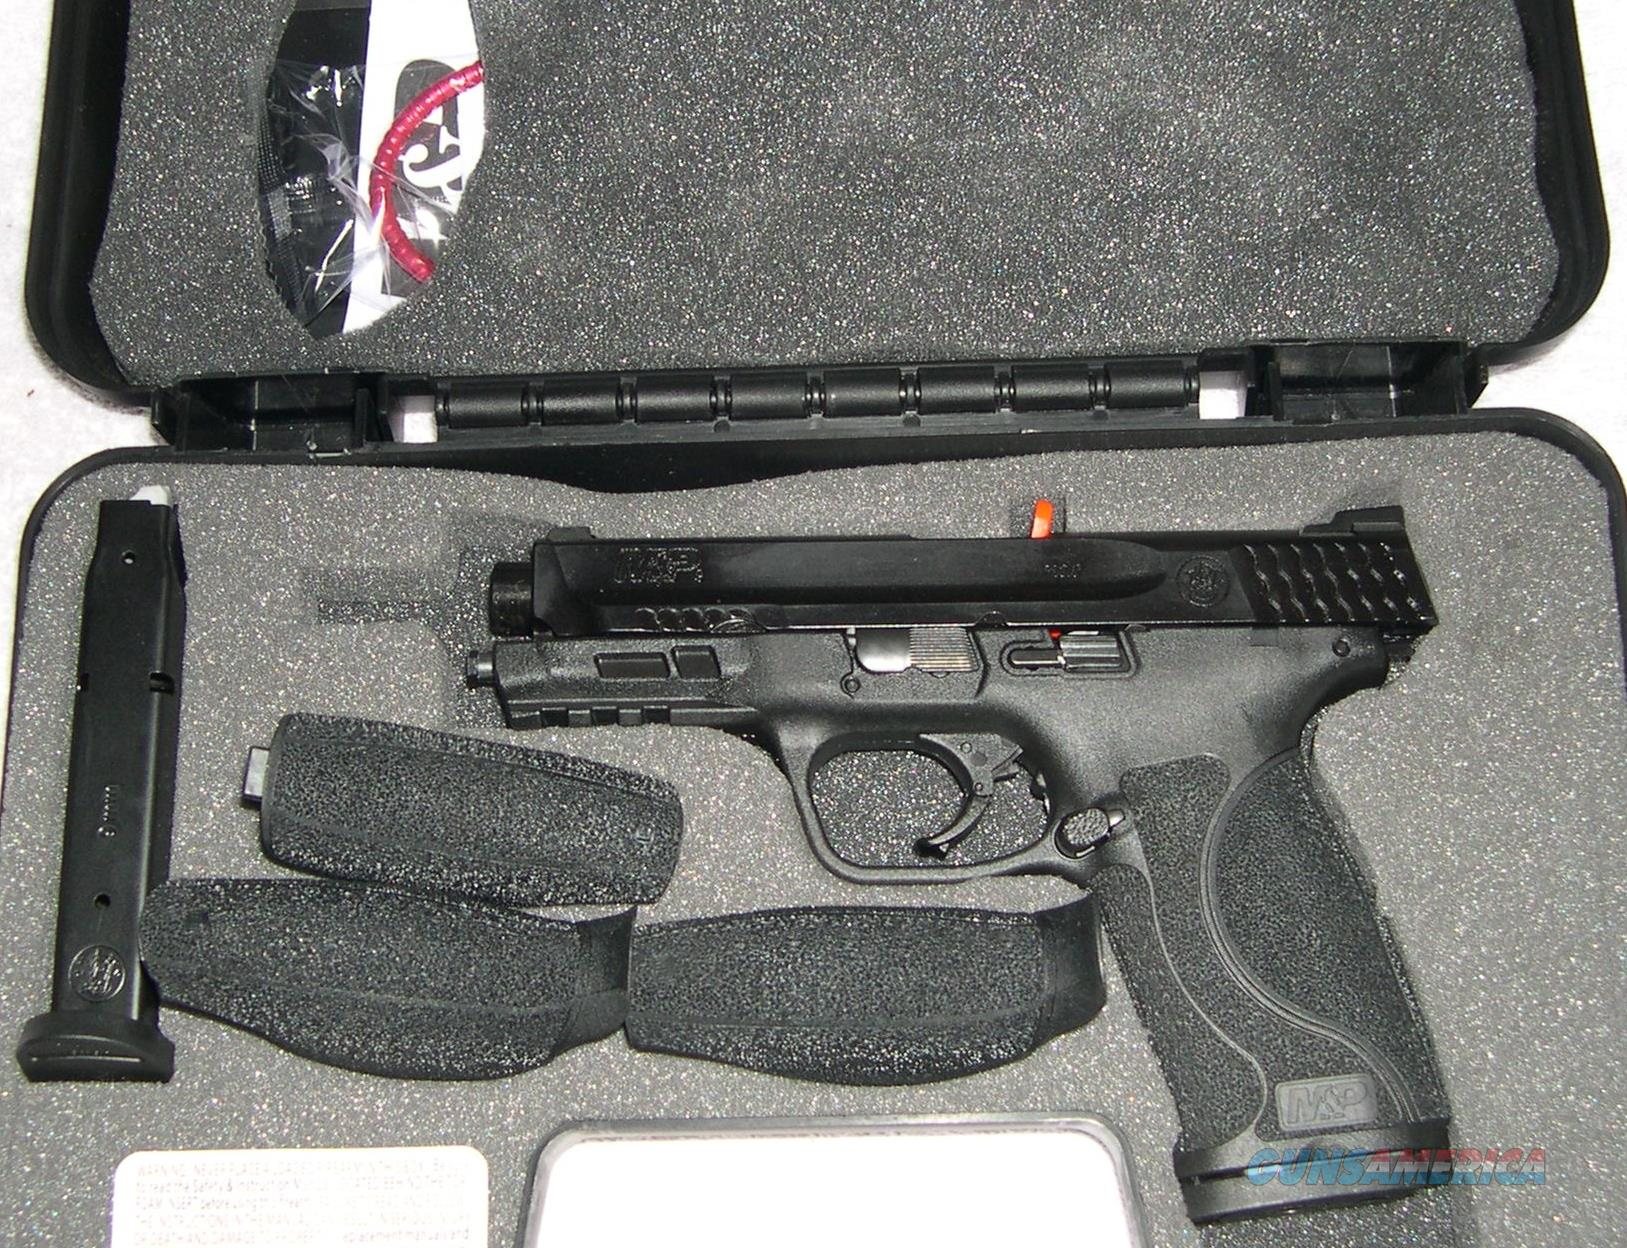 "S&W M&P9 2.0 4.25"" No thumb safety $75 Rebate  Guns > Pistols > Smith & Wesson Pistols - Autos > Polymer Frame"